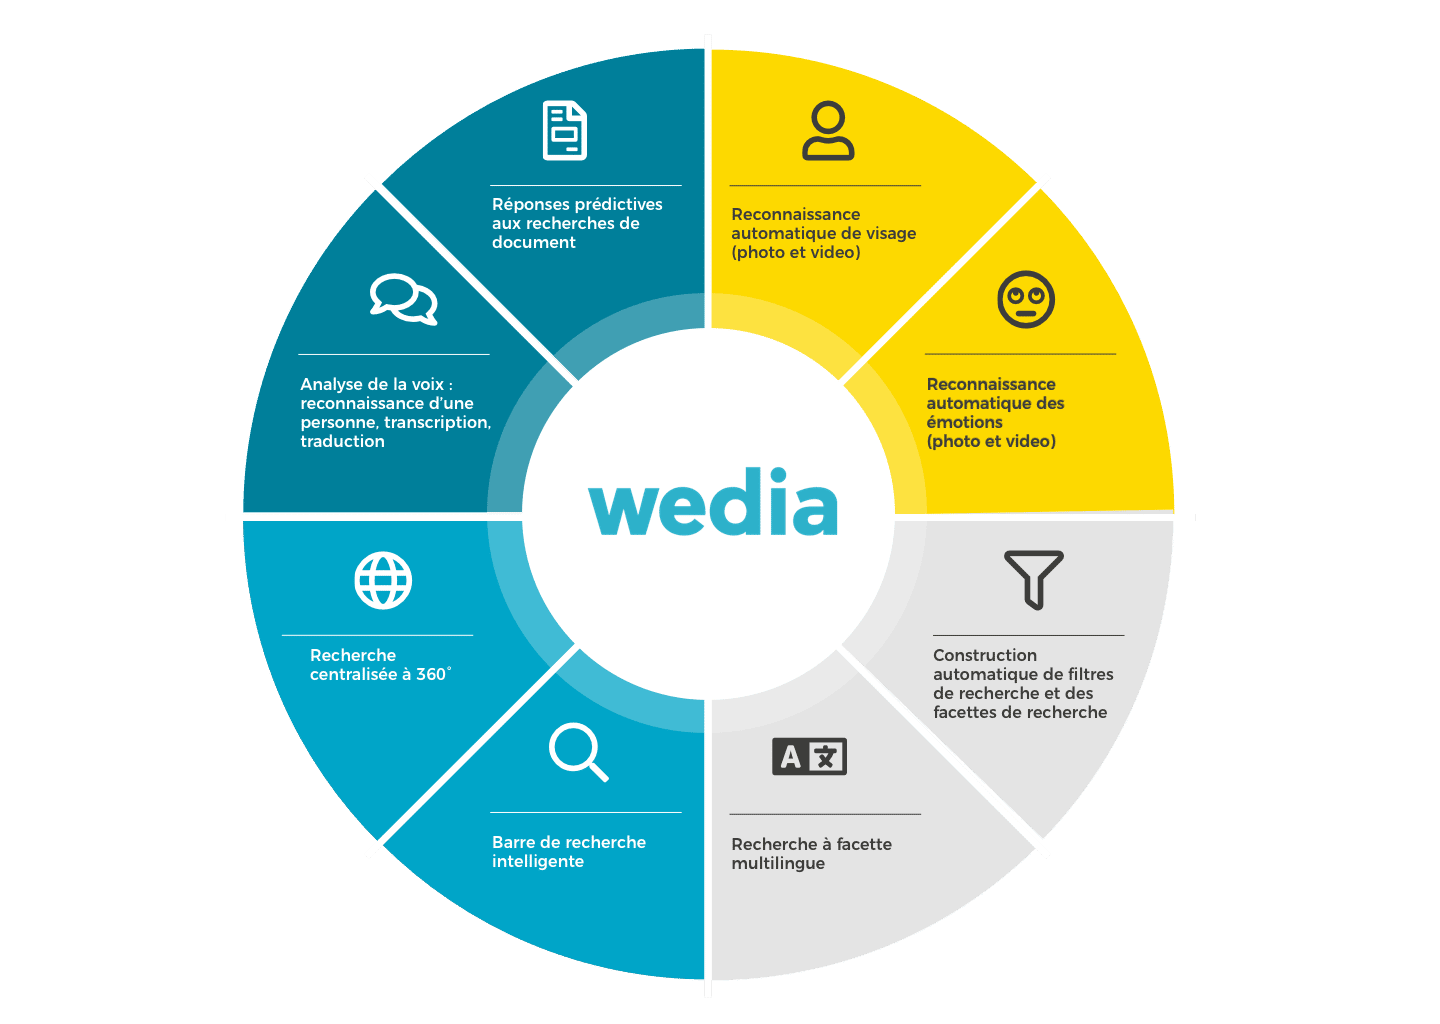 Les innovations du DAM de Wedia couvrent l'ensemble de la solution MRM